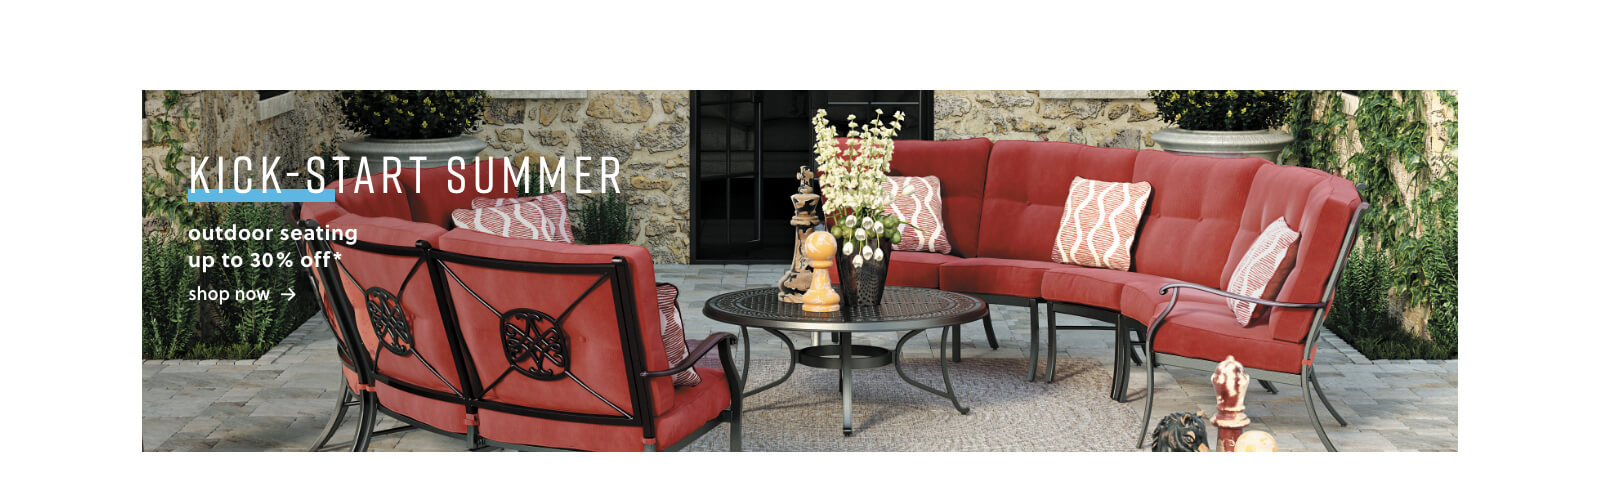 Ashley Furniture Homestore Home Furniture Decor Ashley Homestore